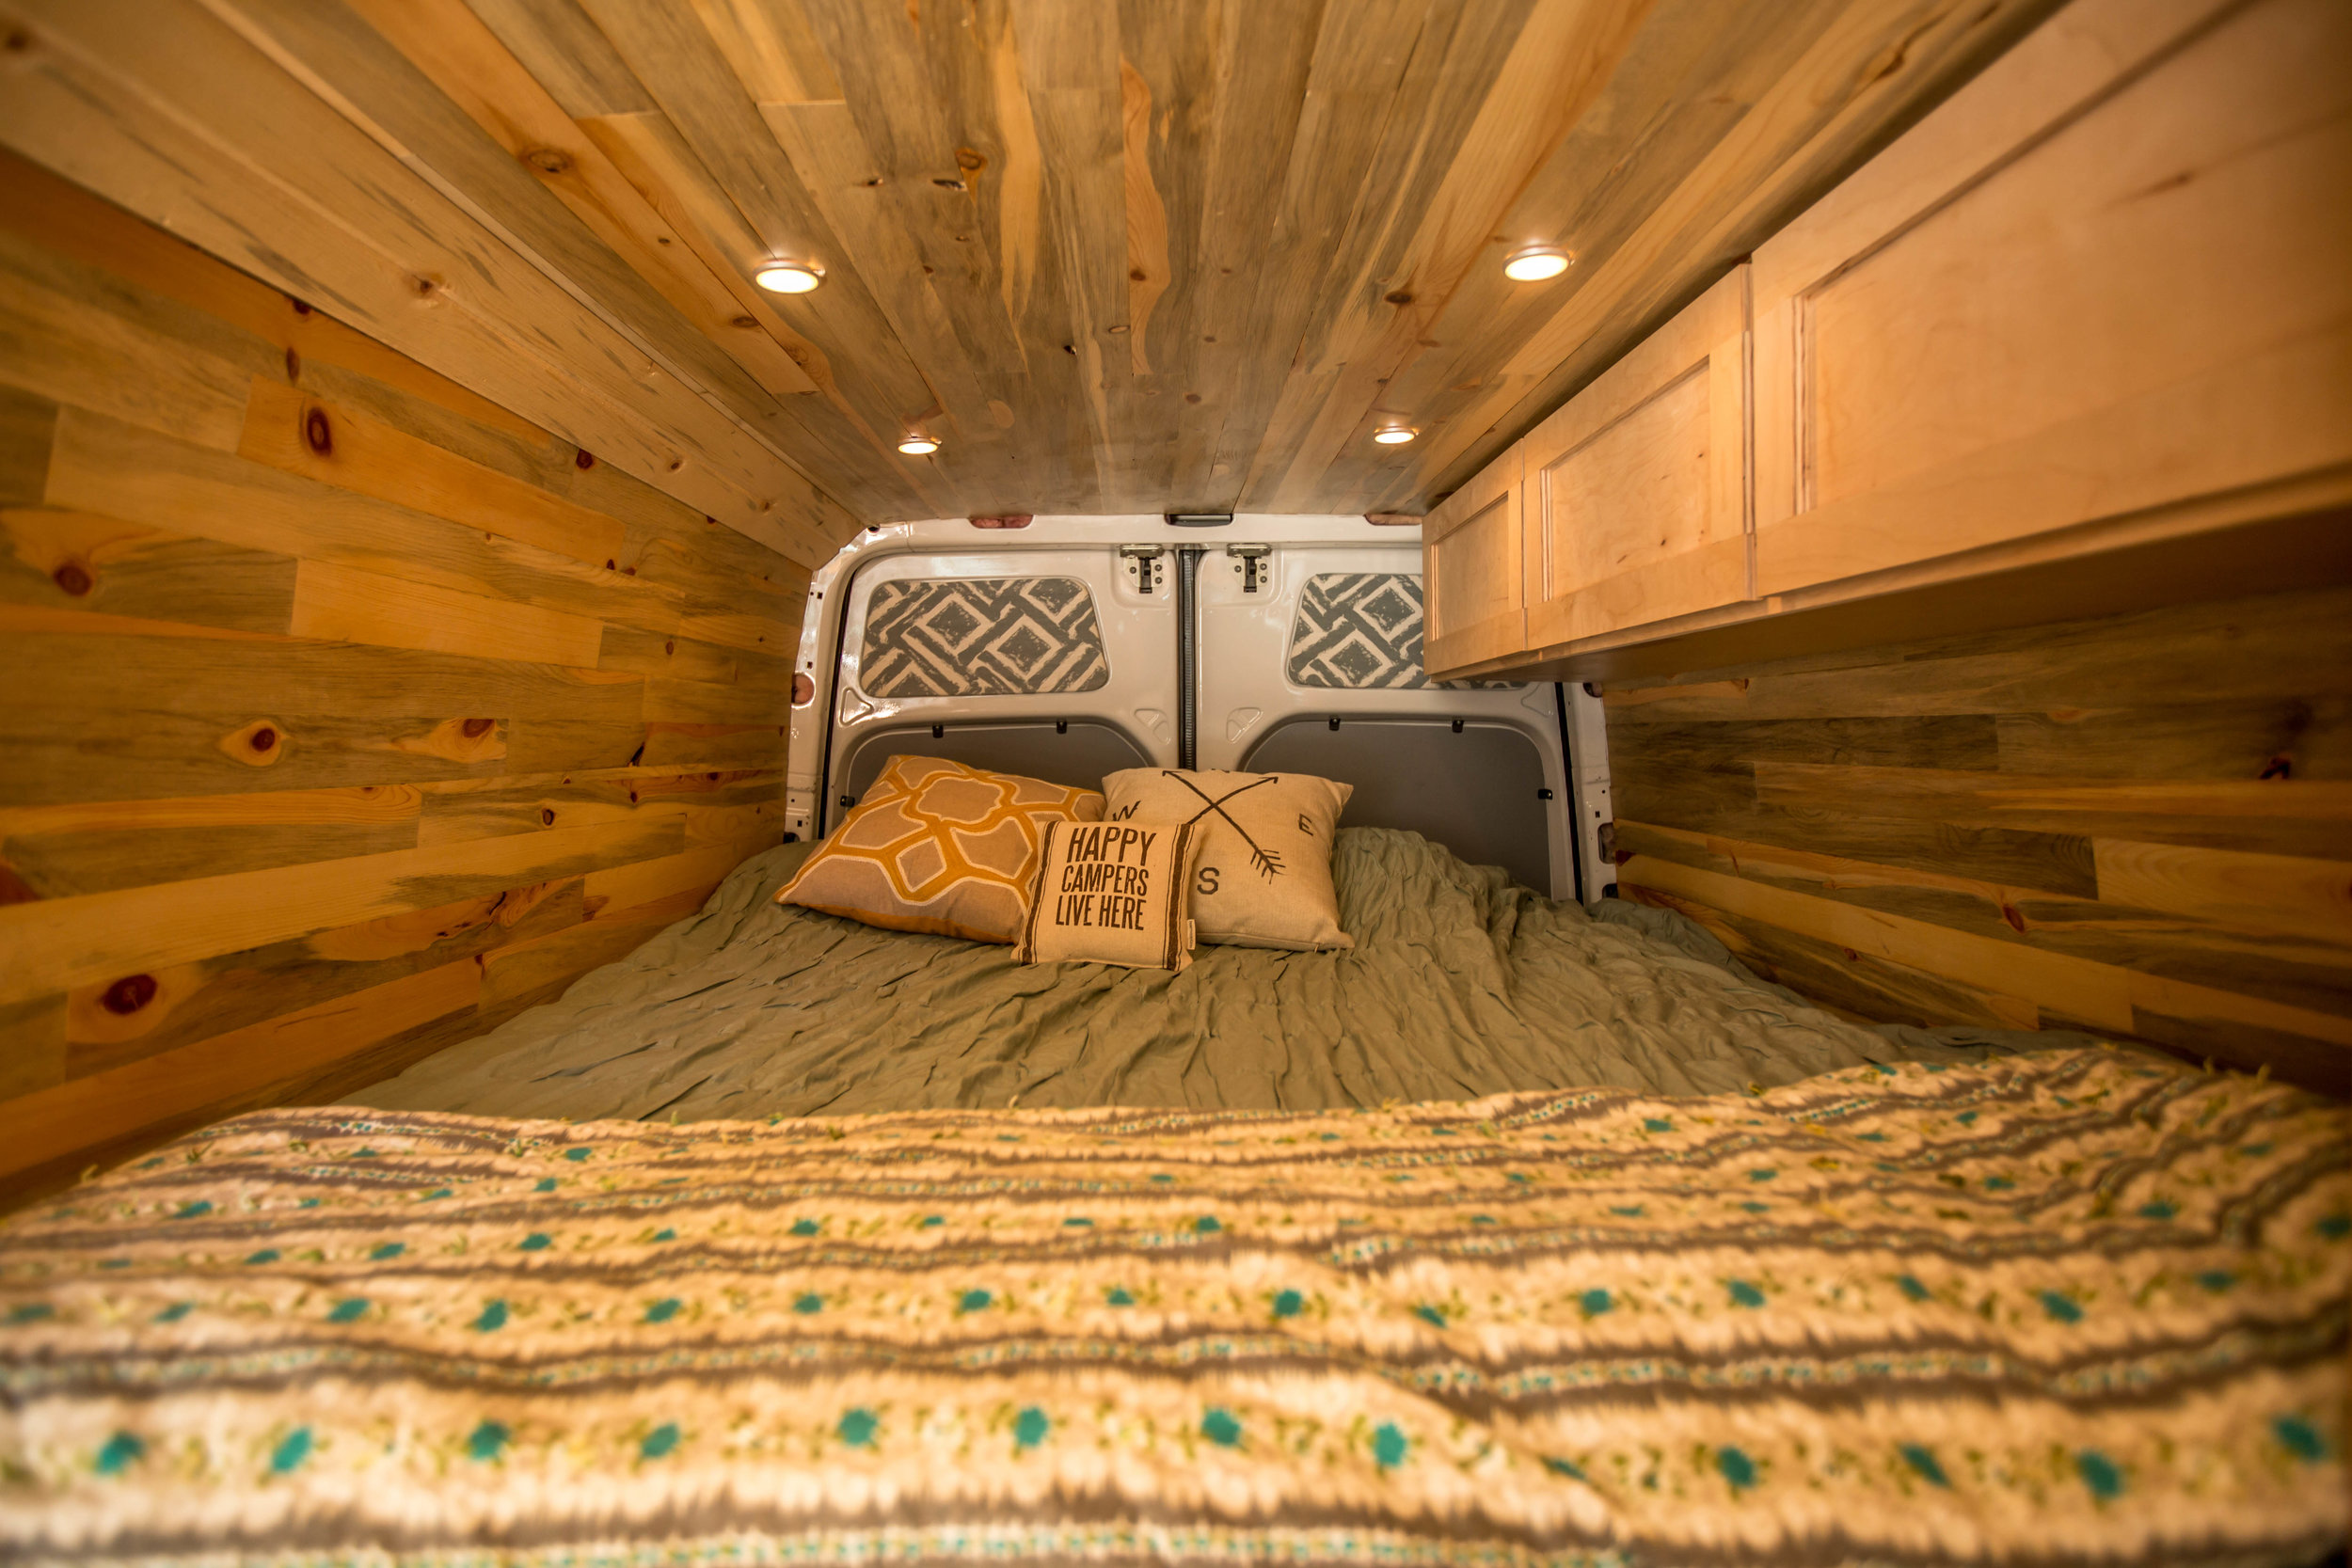 Stella is home to one of the largest beds we've packed inside of the Sprinter chassis.